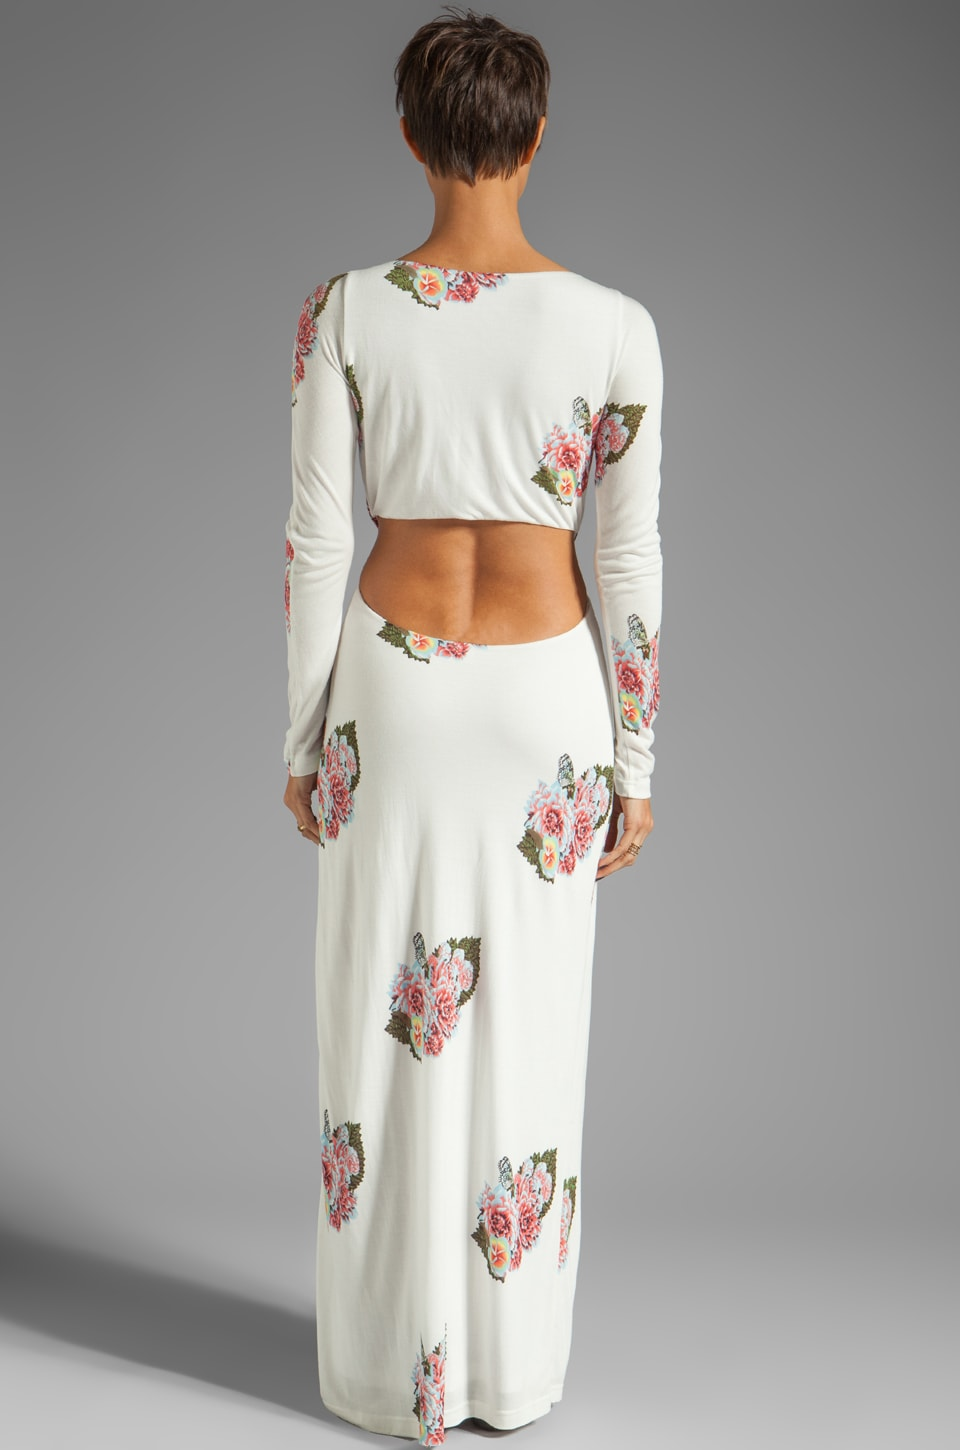 Pencey Standard Open Back Dress in Floral